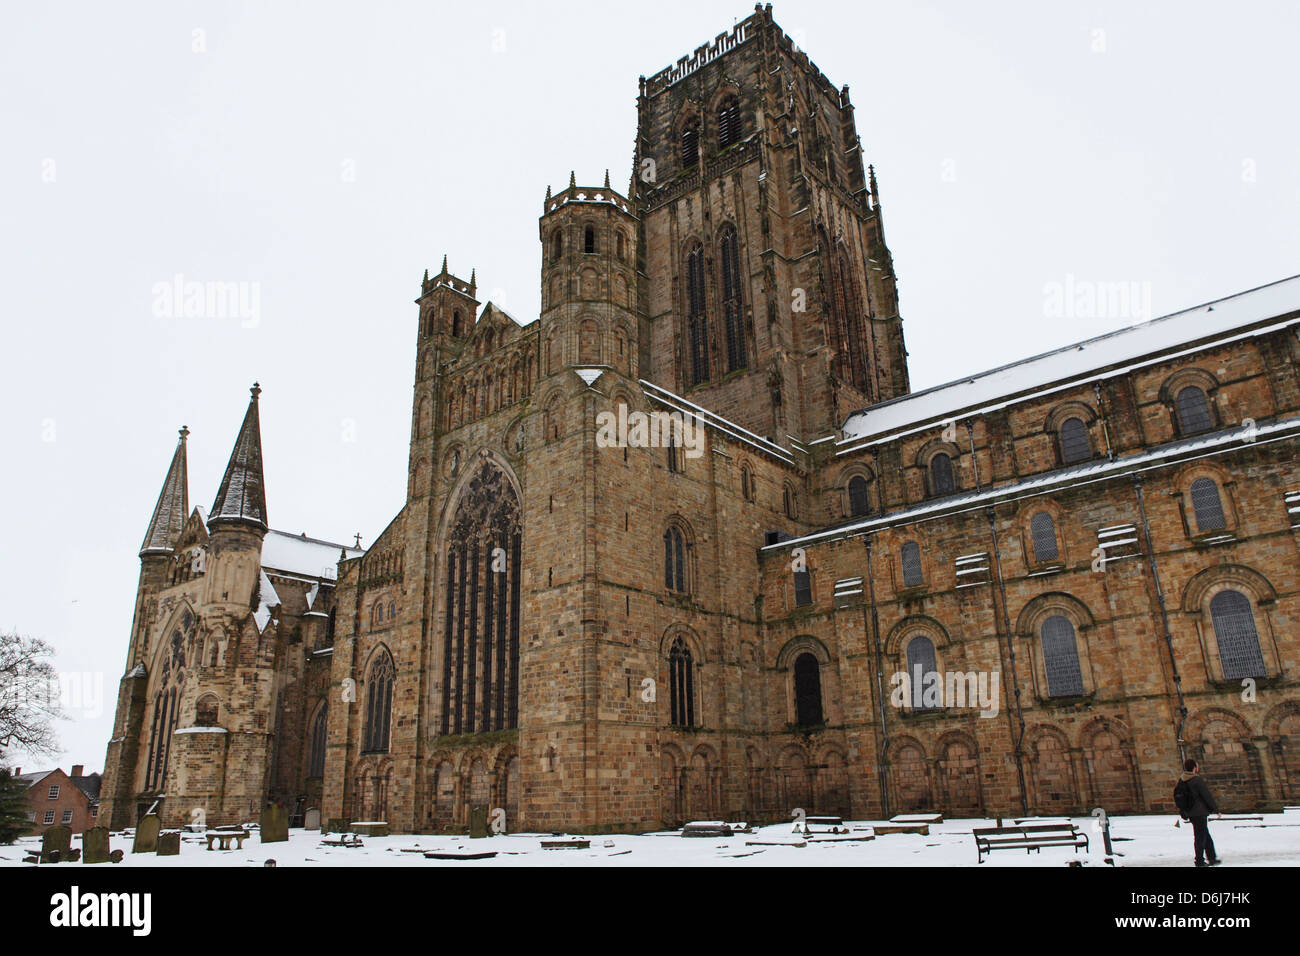 Durham Cathedral, UNESCO World Heritage Site, in snow on a winter's day in Durham, County Durham, England, UK, - Stock Image